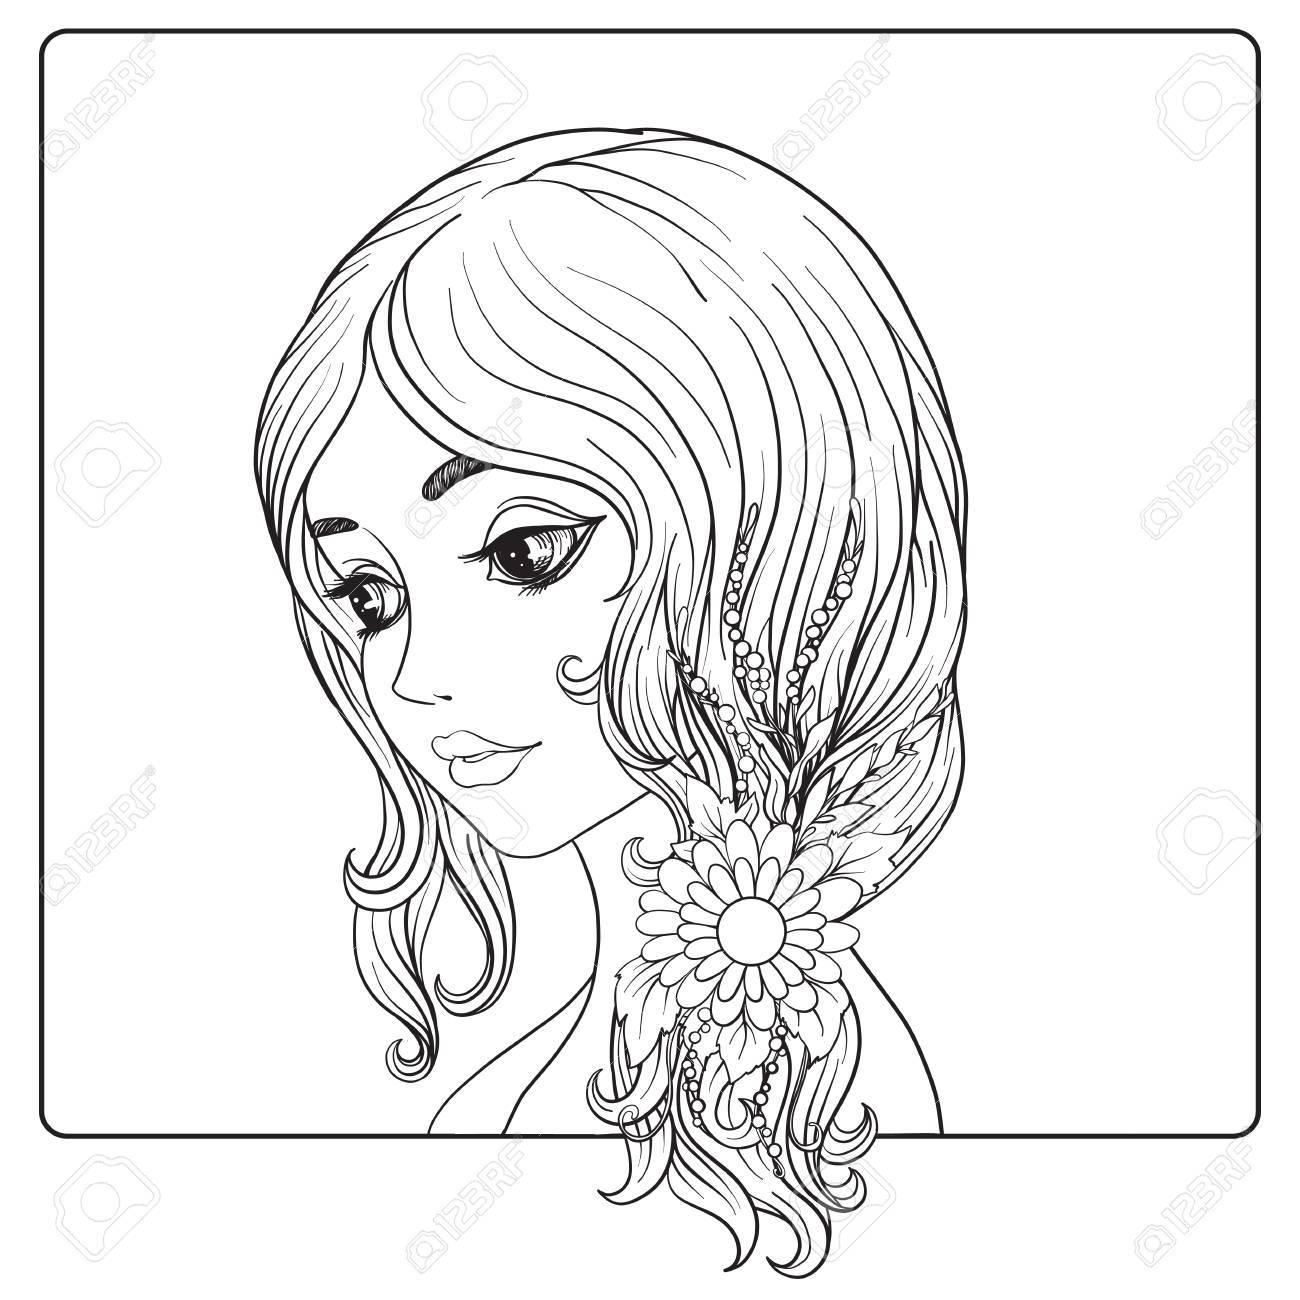 Girl Drawing Outline